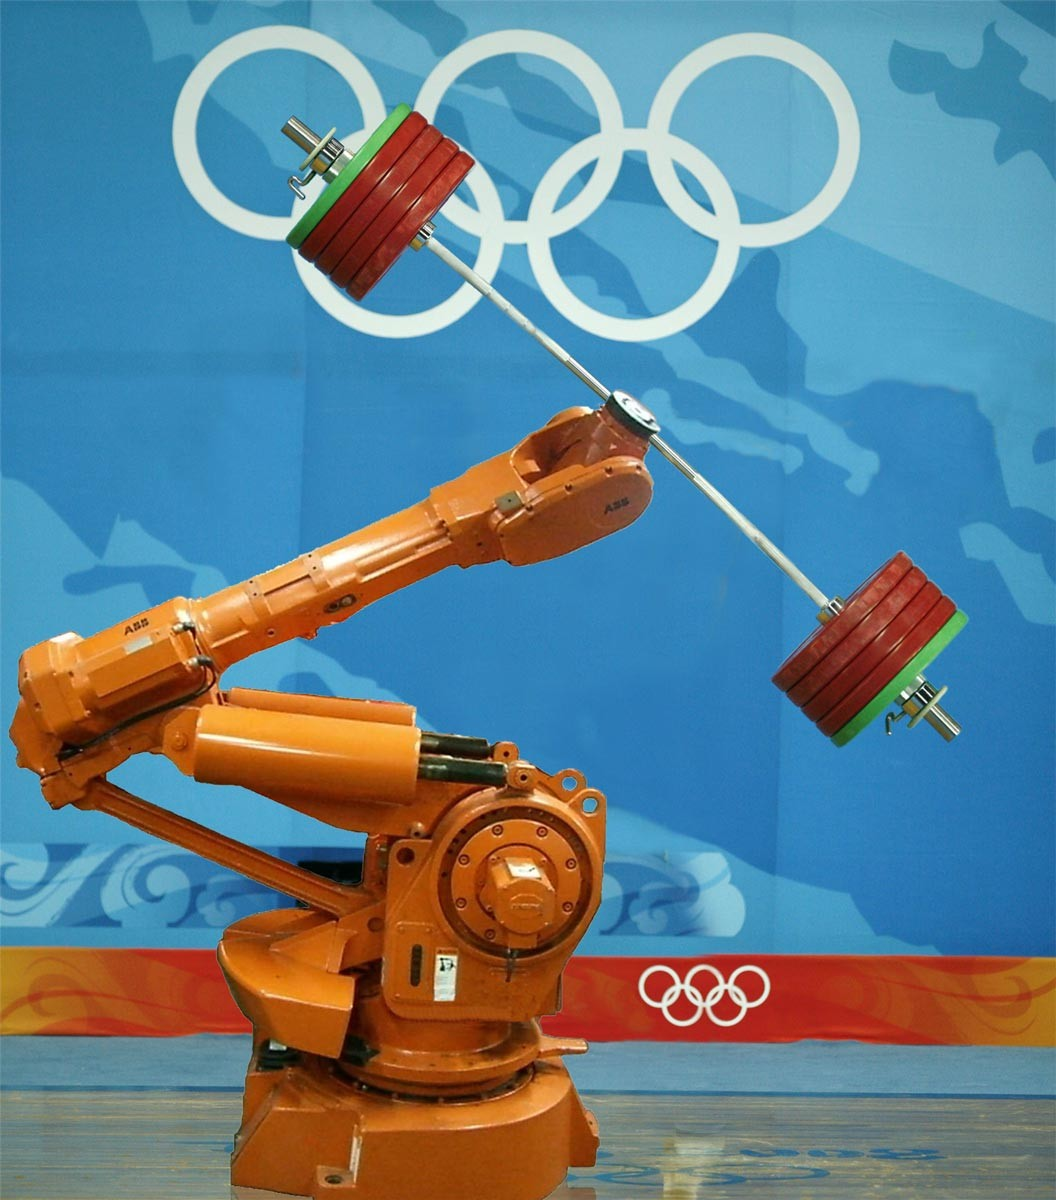 2012 Robot Olympics Weightlighting